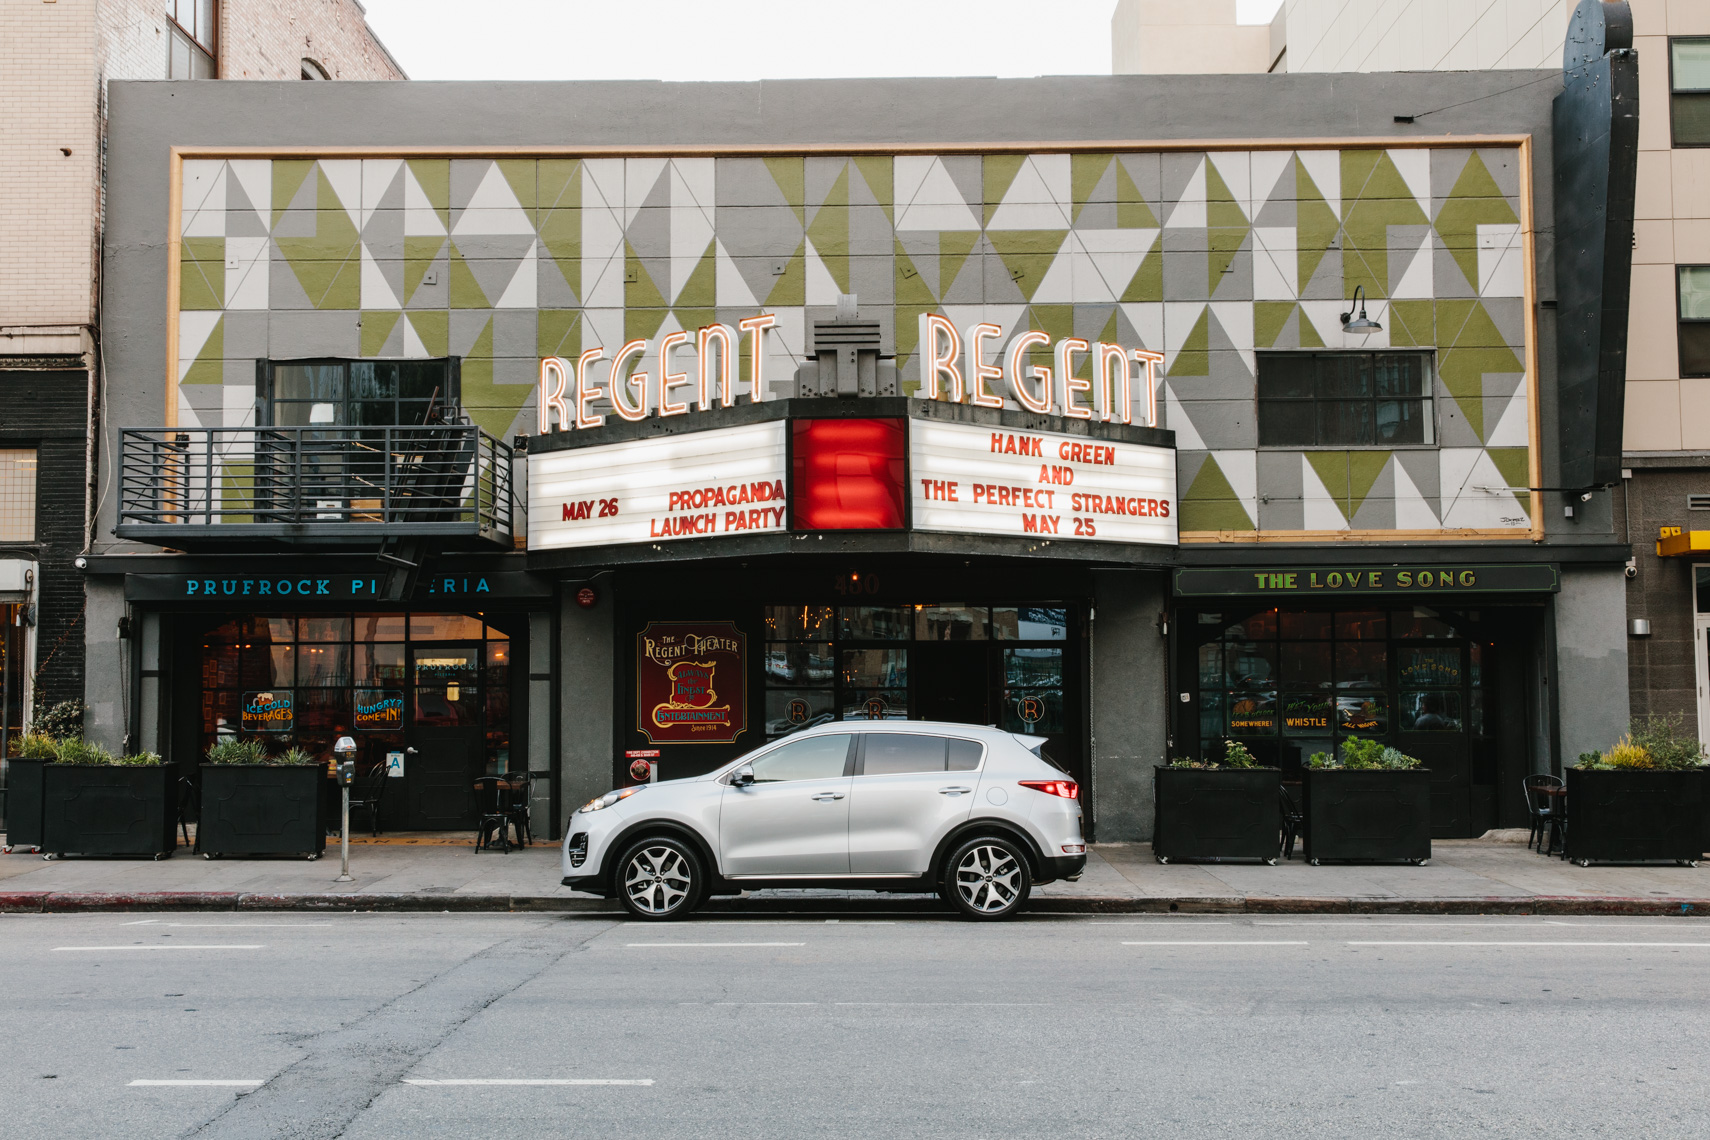 Kia_Social_Theater_0047